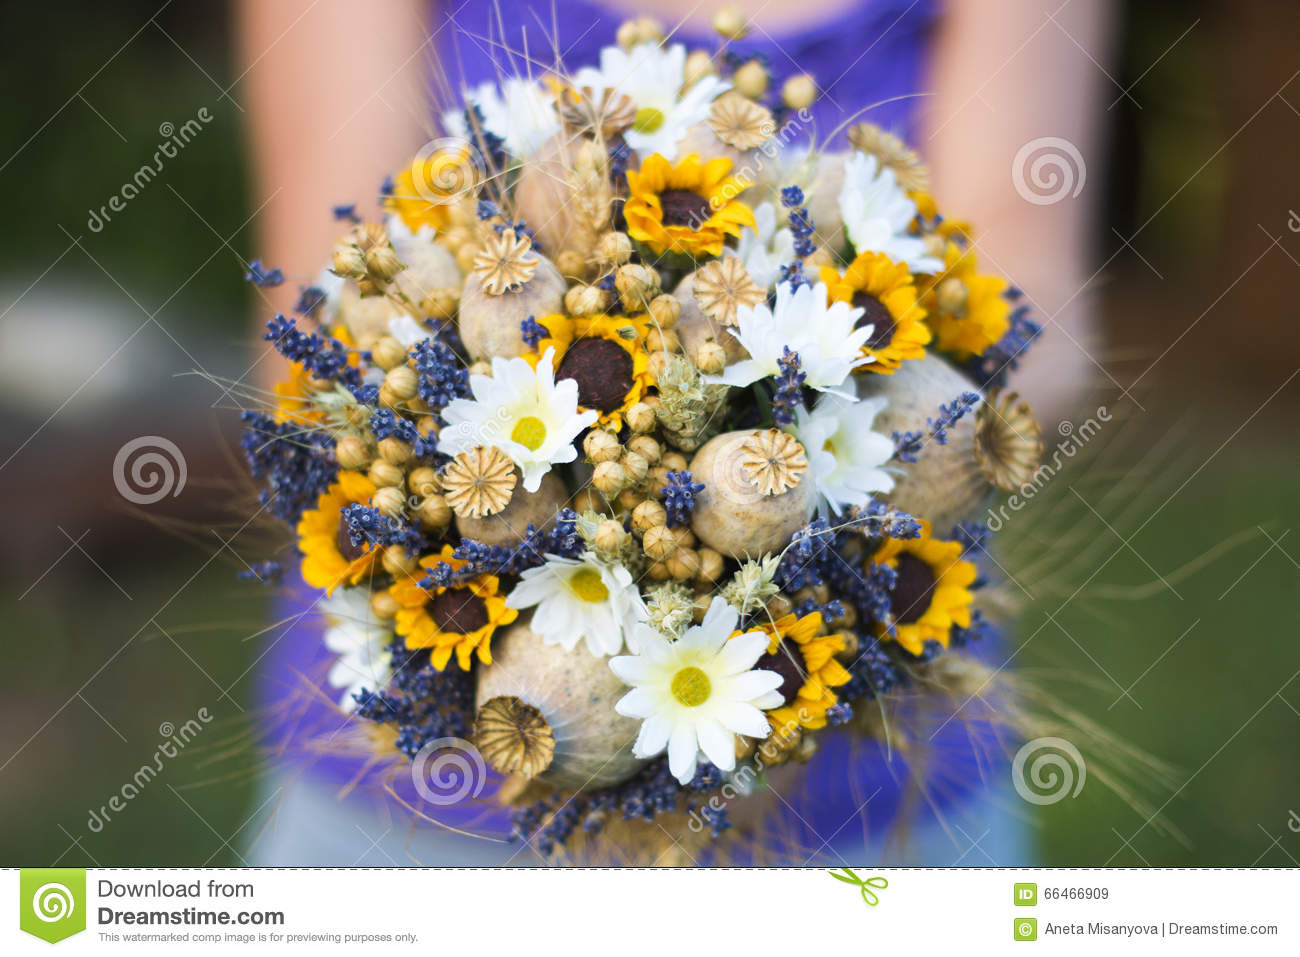 Wedding bouquet of dry flowers stock image image of adult florist wedding bouquet of dry flowers adult florist izmirmasajfo Images